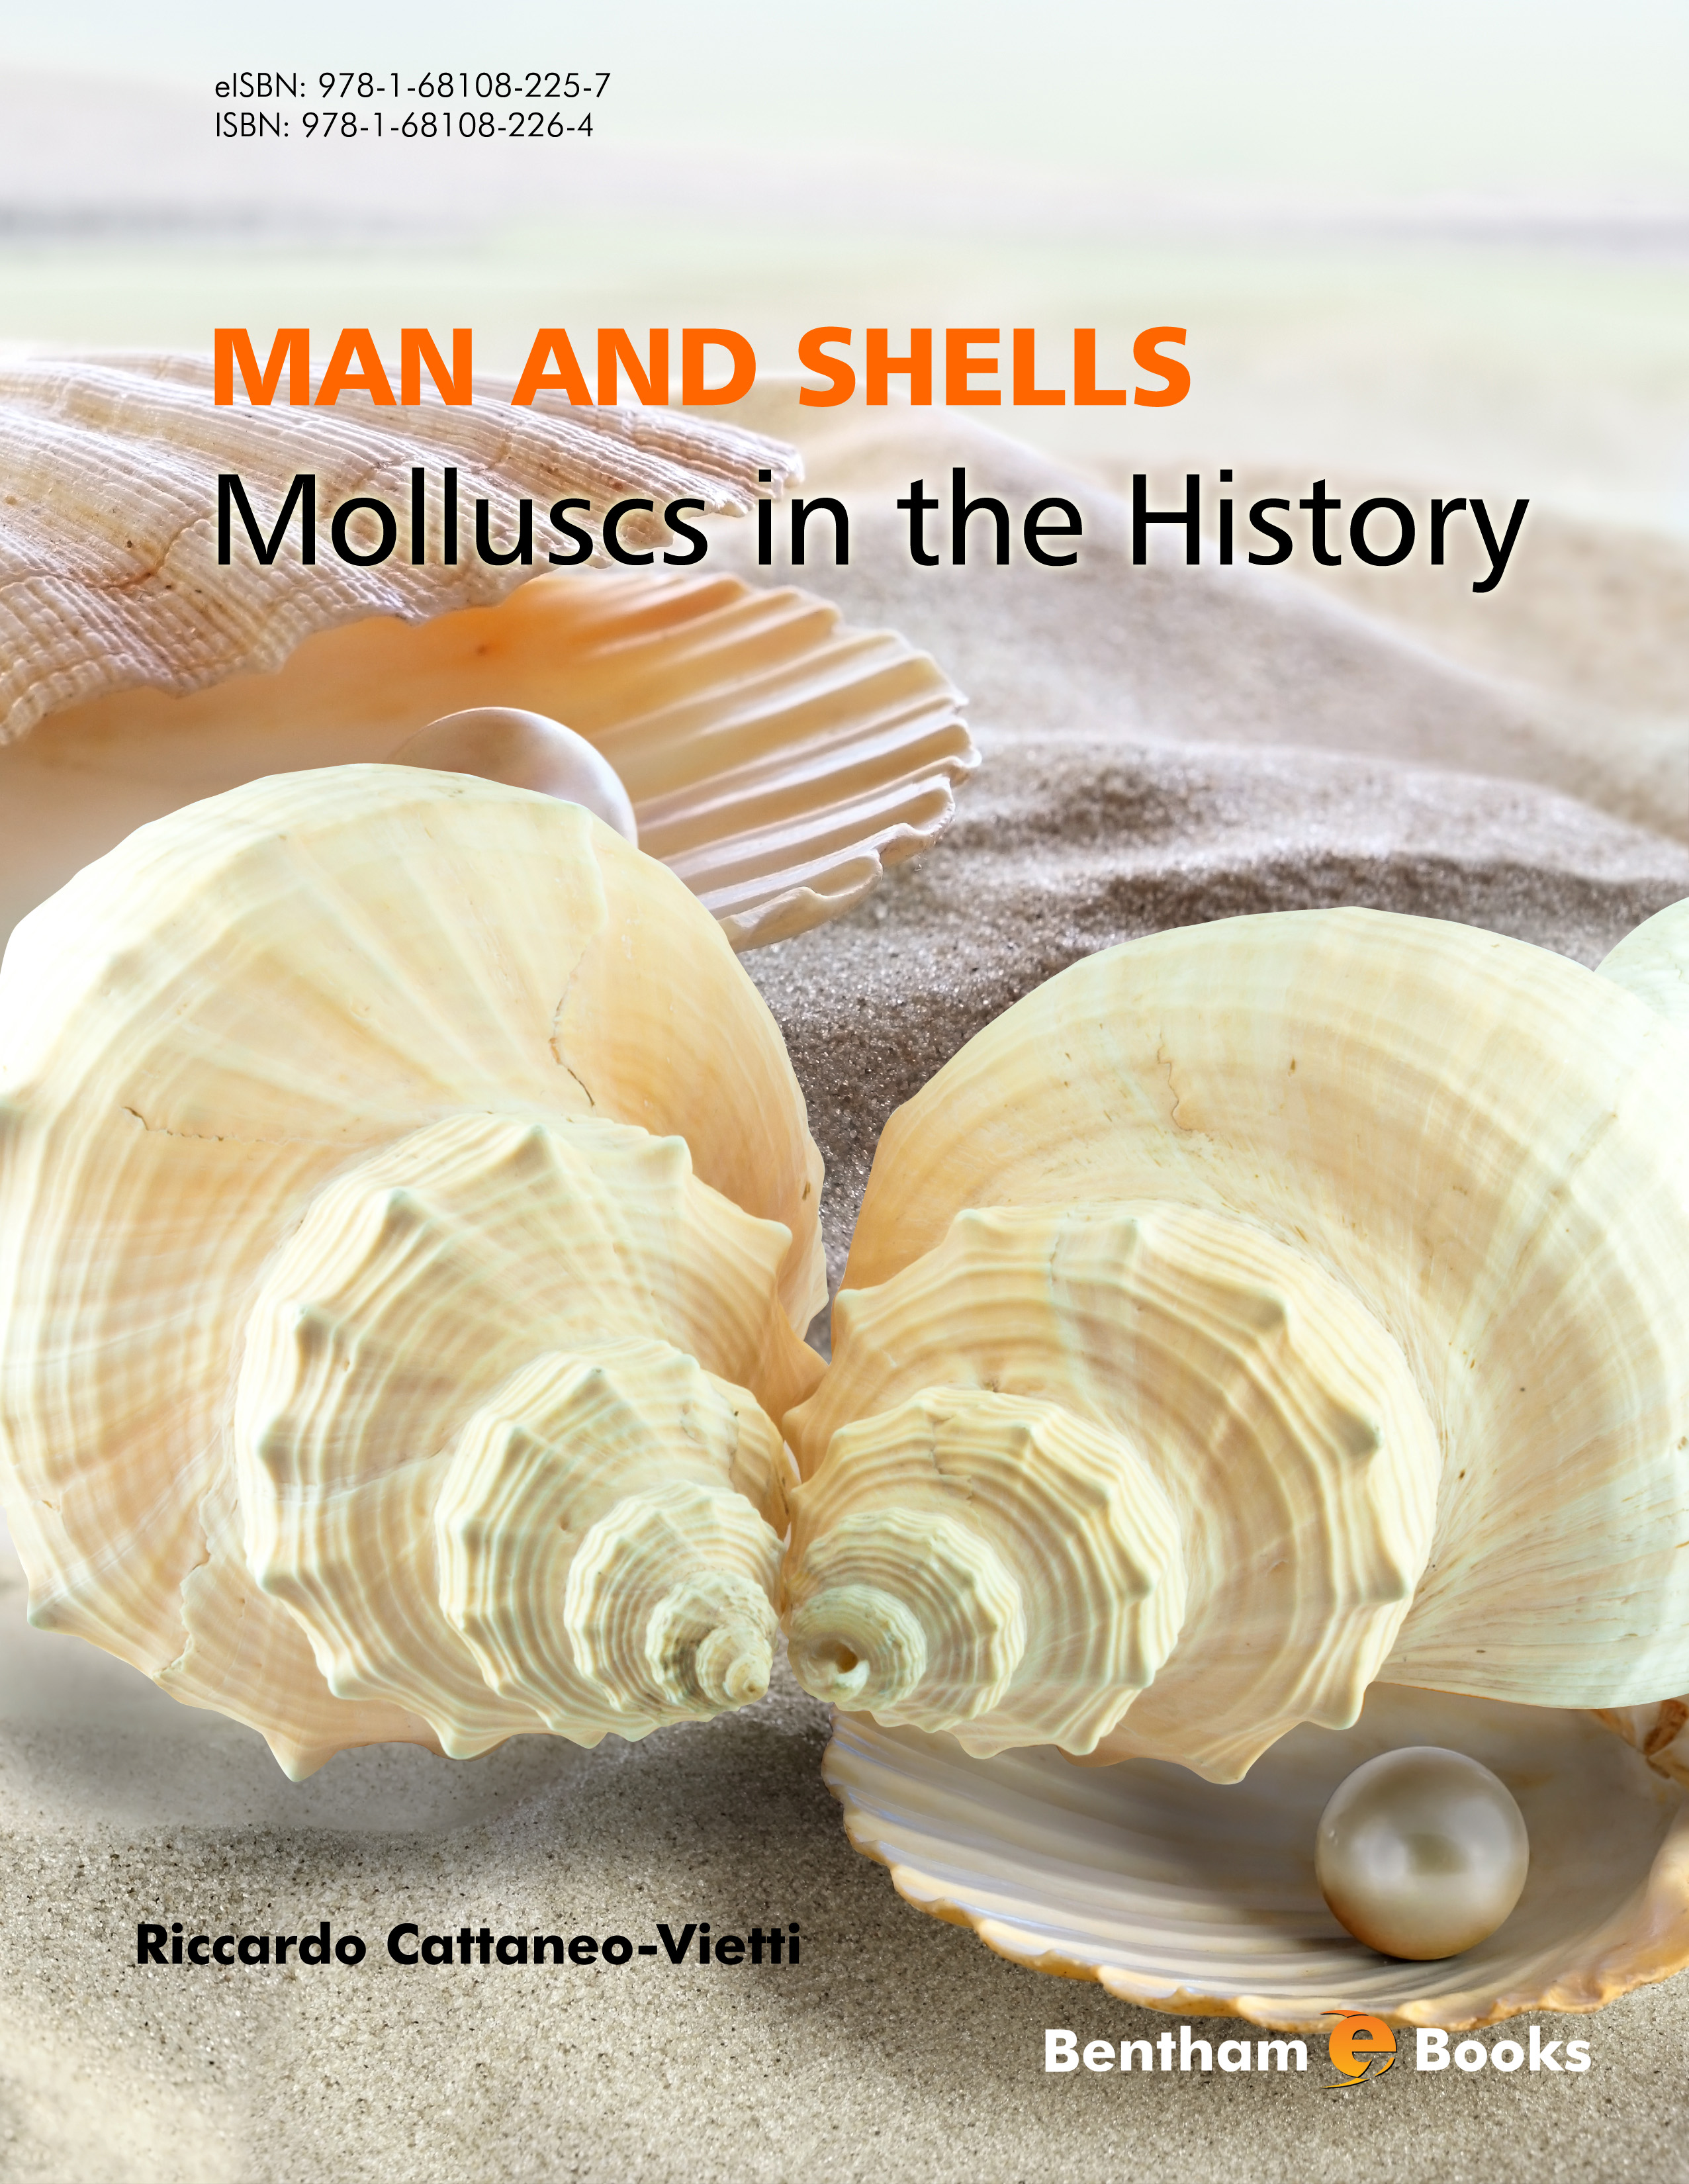 MAN and SHELLS: Molluscs in the History